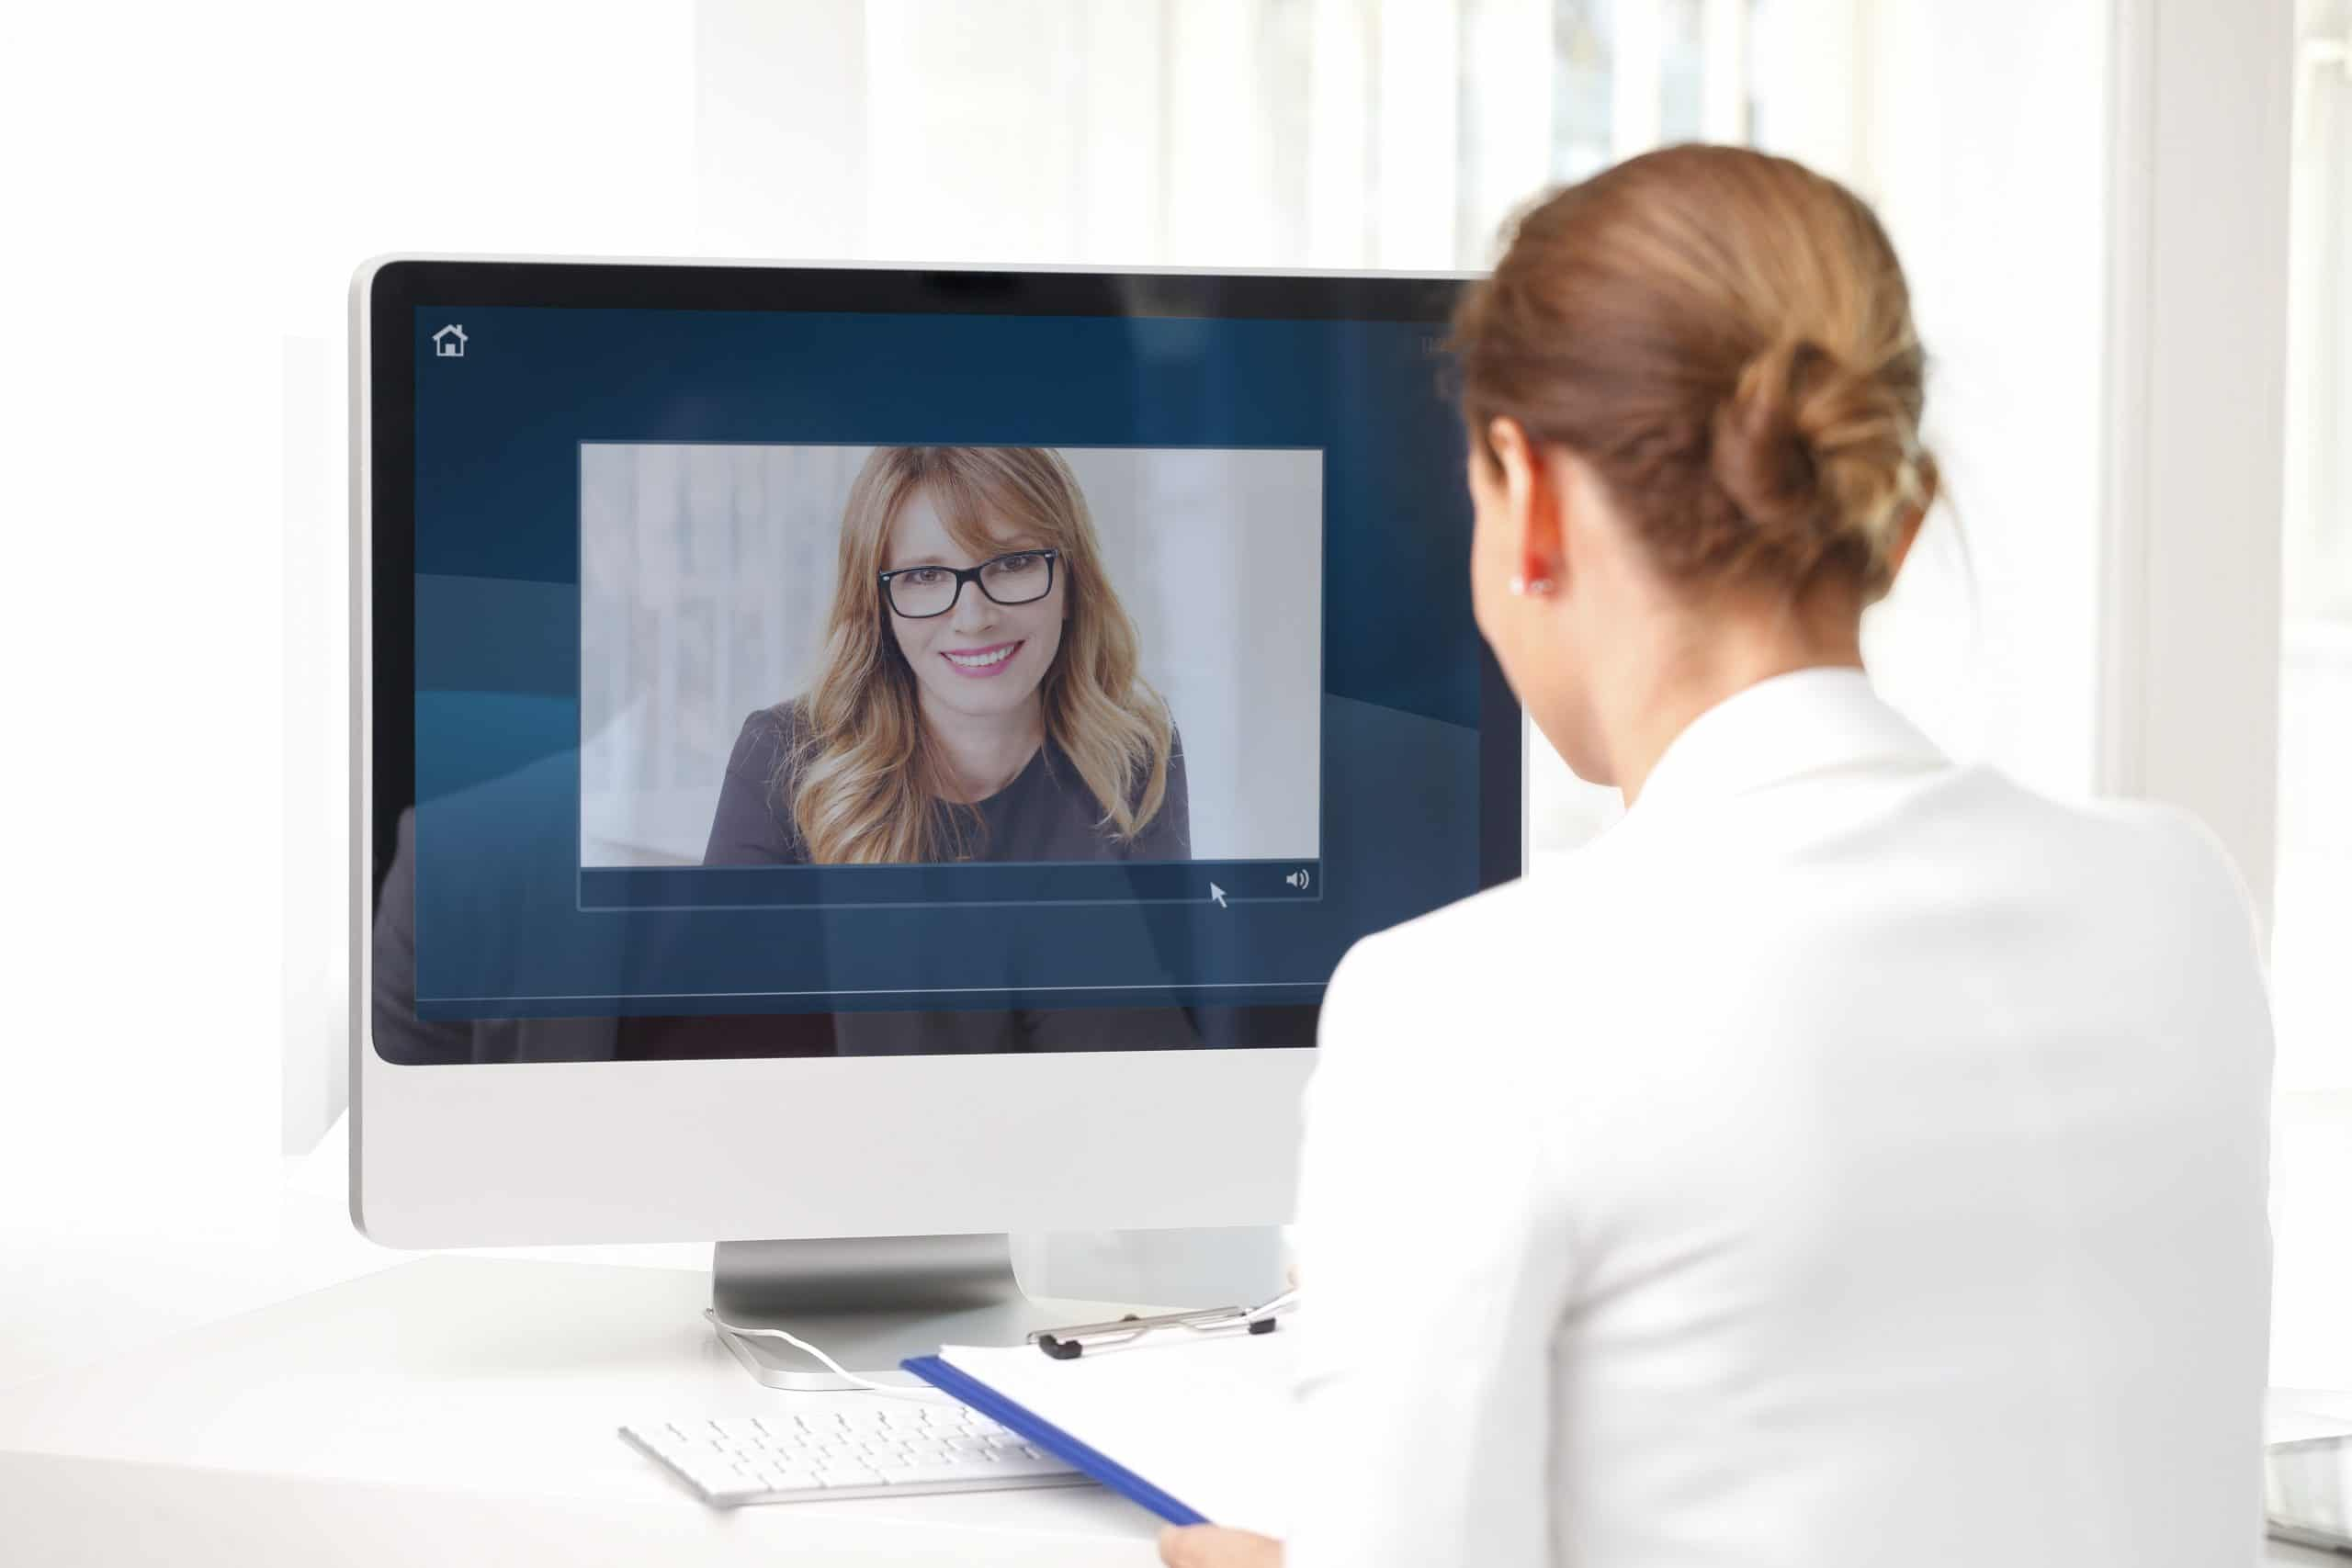 Answering Your Questions About Using Telehealth Support